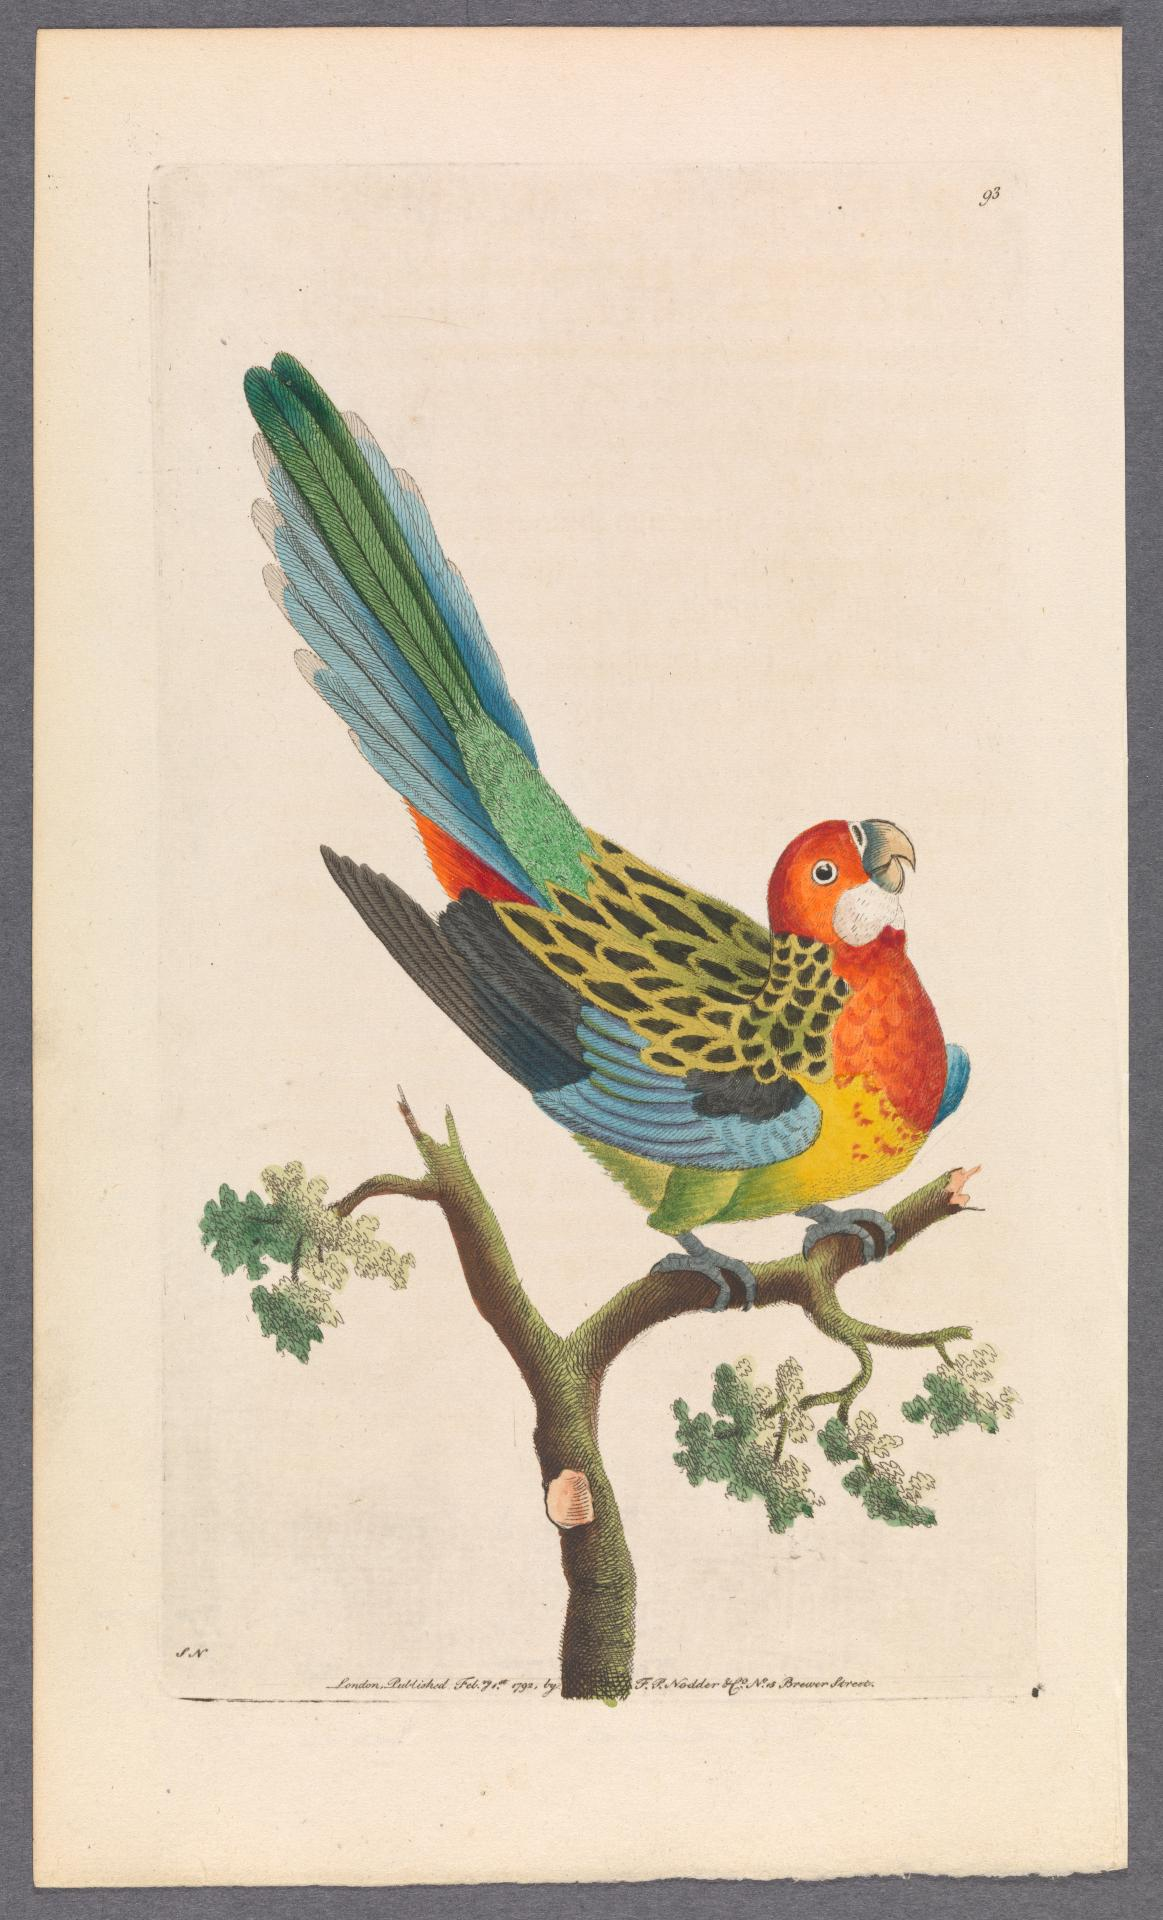 The Nonpareil Parrot (Eastern Rosella)